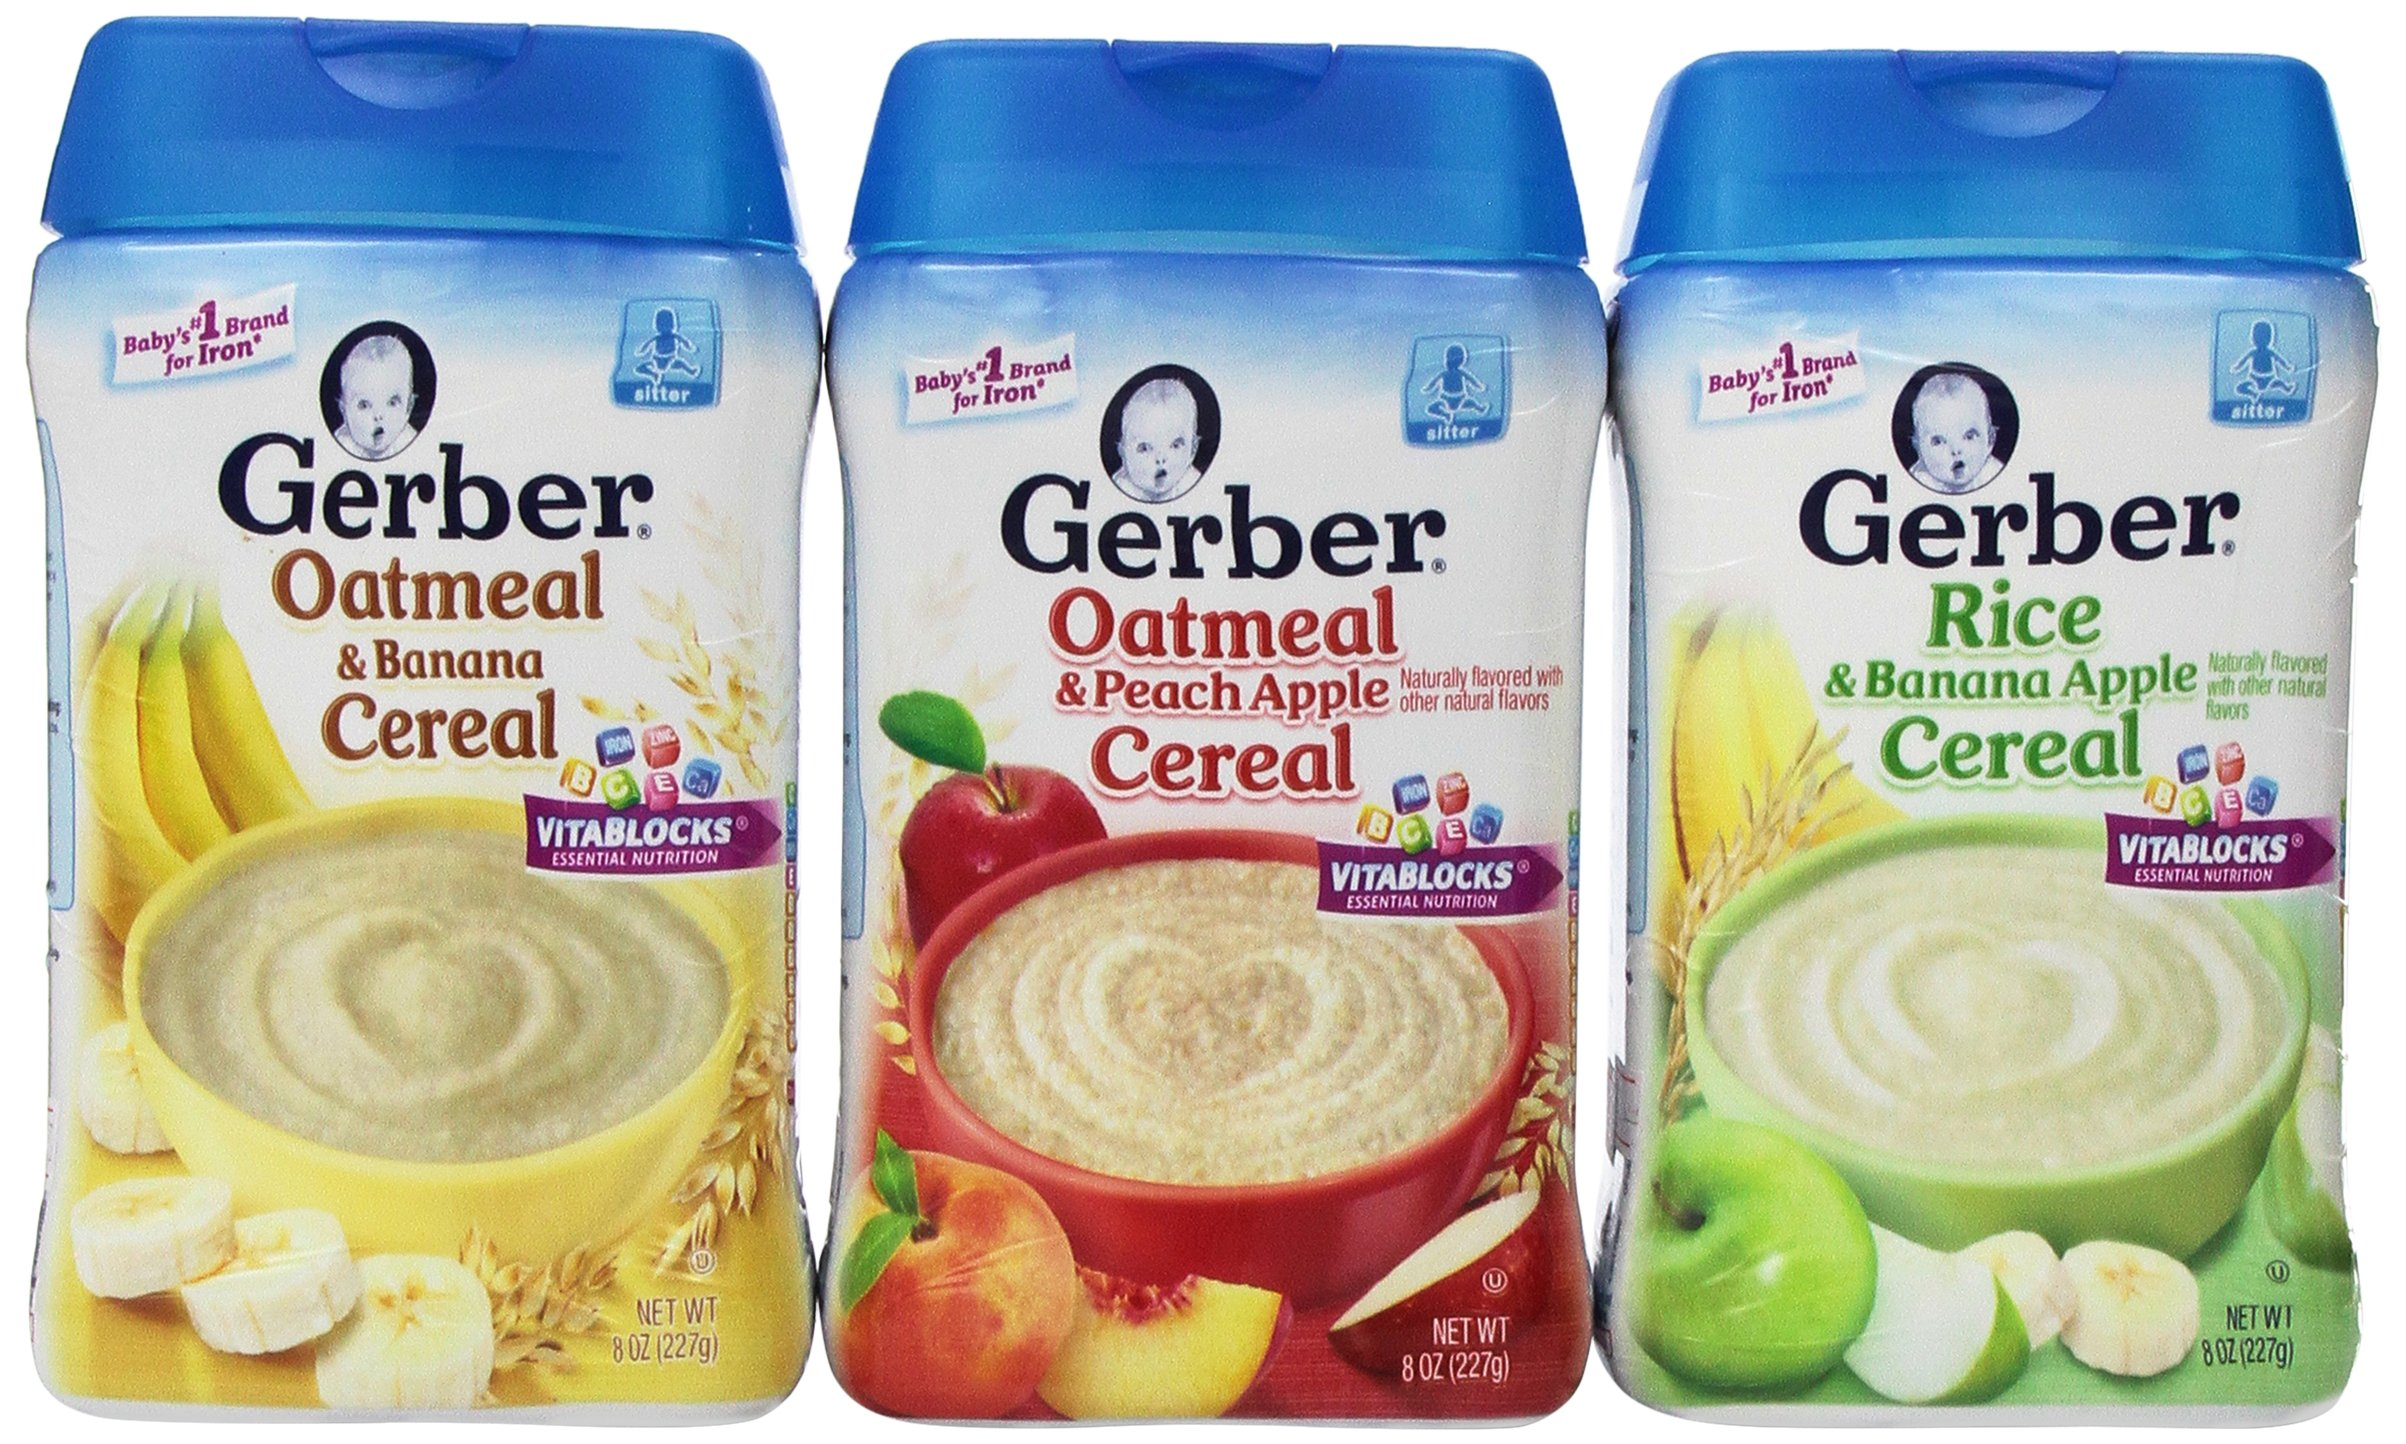 Gerber Baby Cereal 3 Flavor Variety Bundle: (1) Gerber Oatmeal & Banana Cereal, (1) Gerber Oatmeal & Peach Apple Cereal, and (1) Gerber Rice & Banana Apple Cereal, 8 Oz. Ea. (3 containers 8 Oz. Ea.) by Gerber